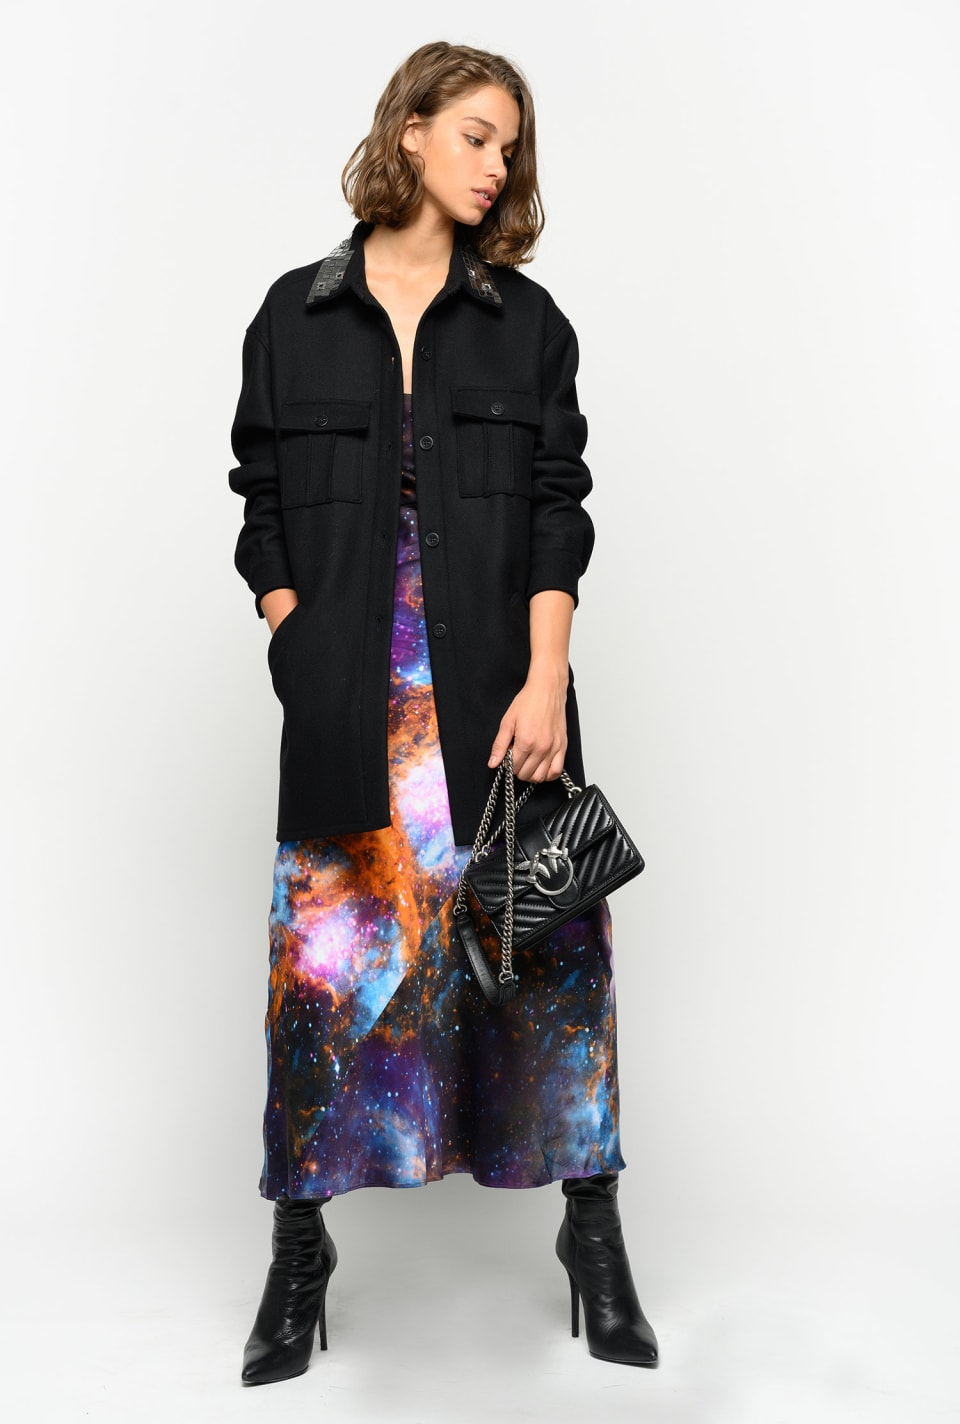 Robe avec imprimé galaxies